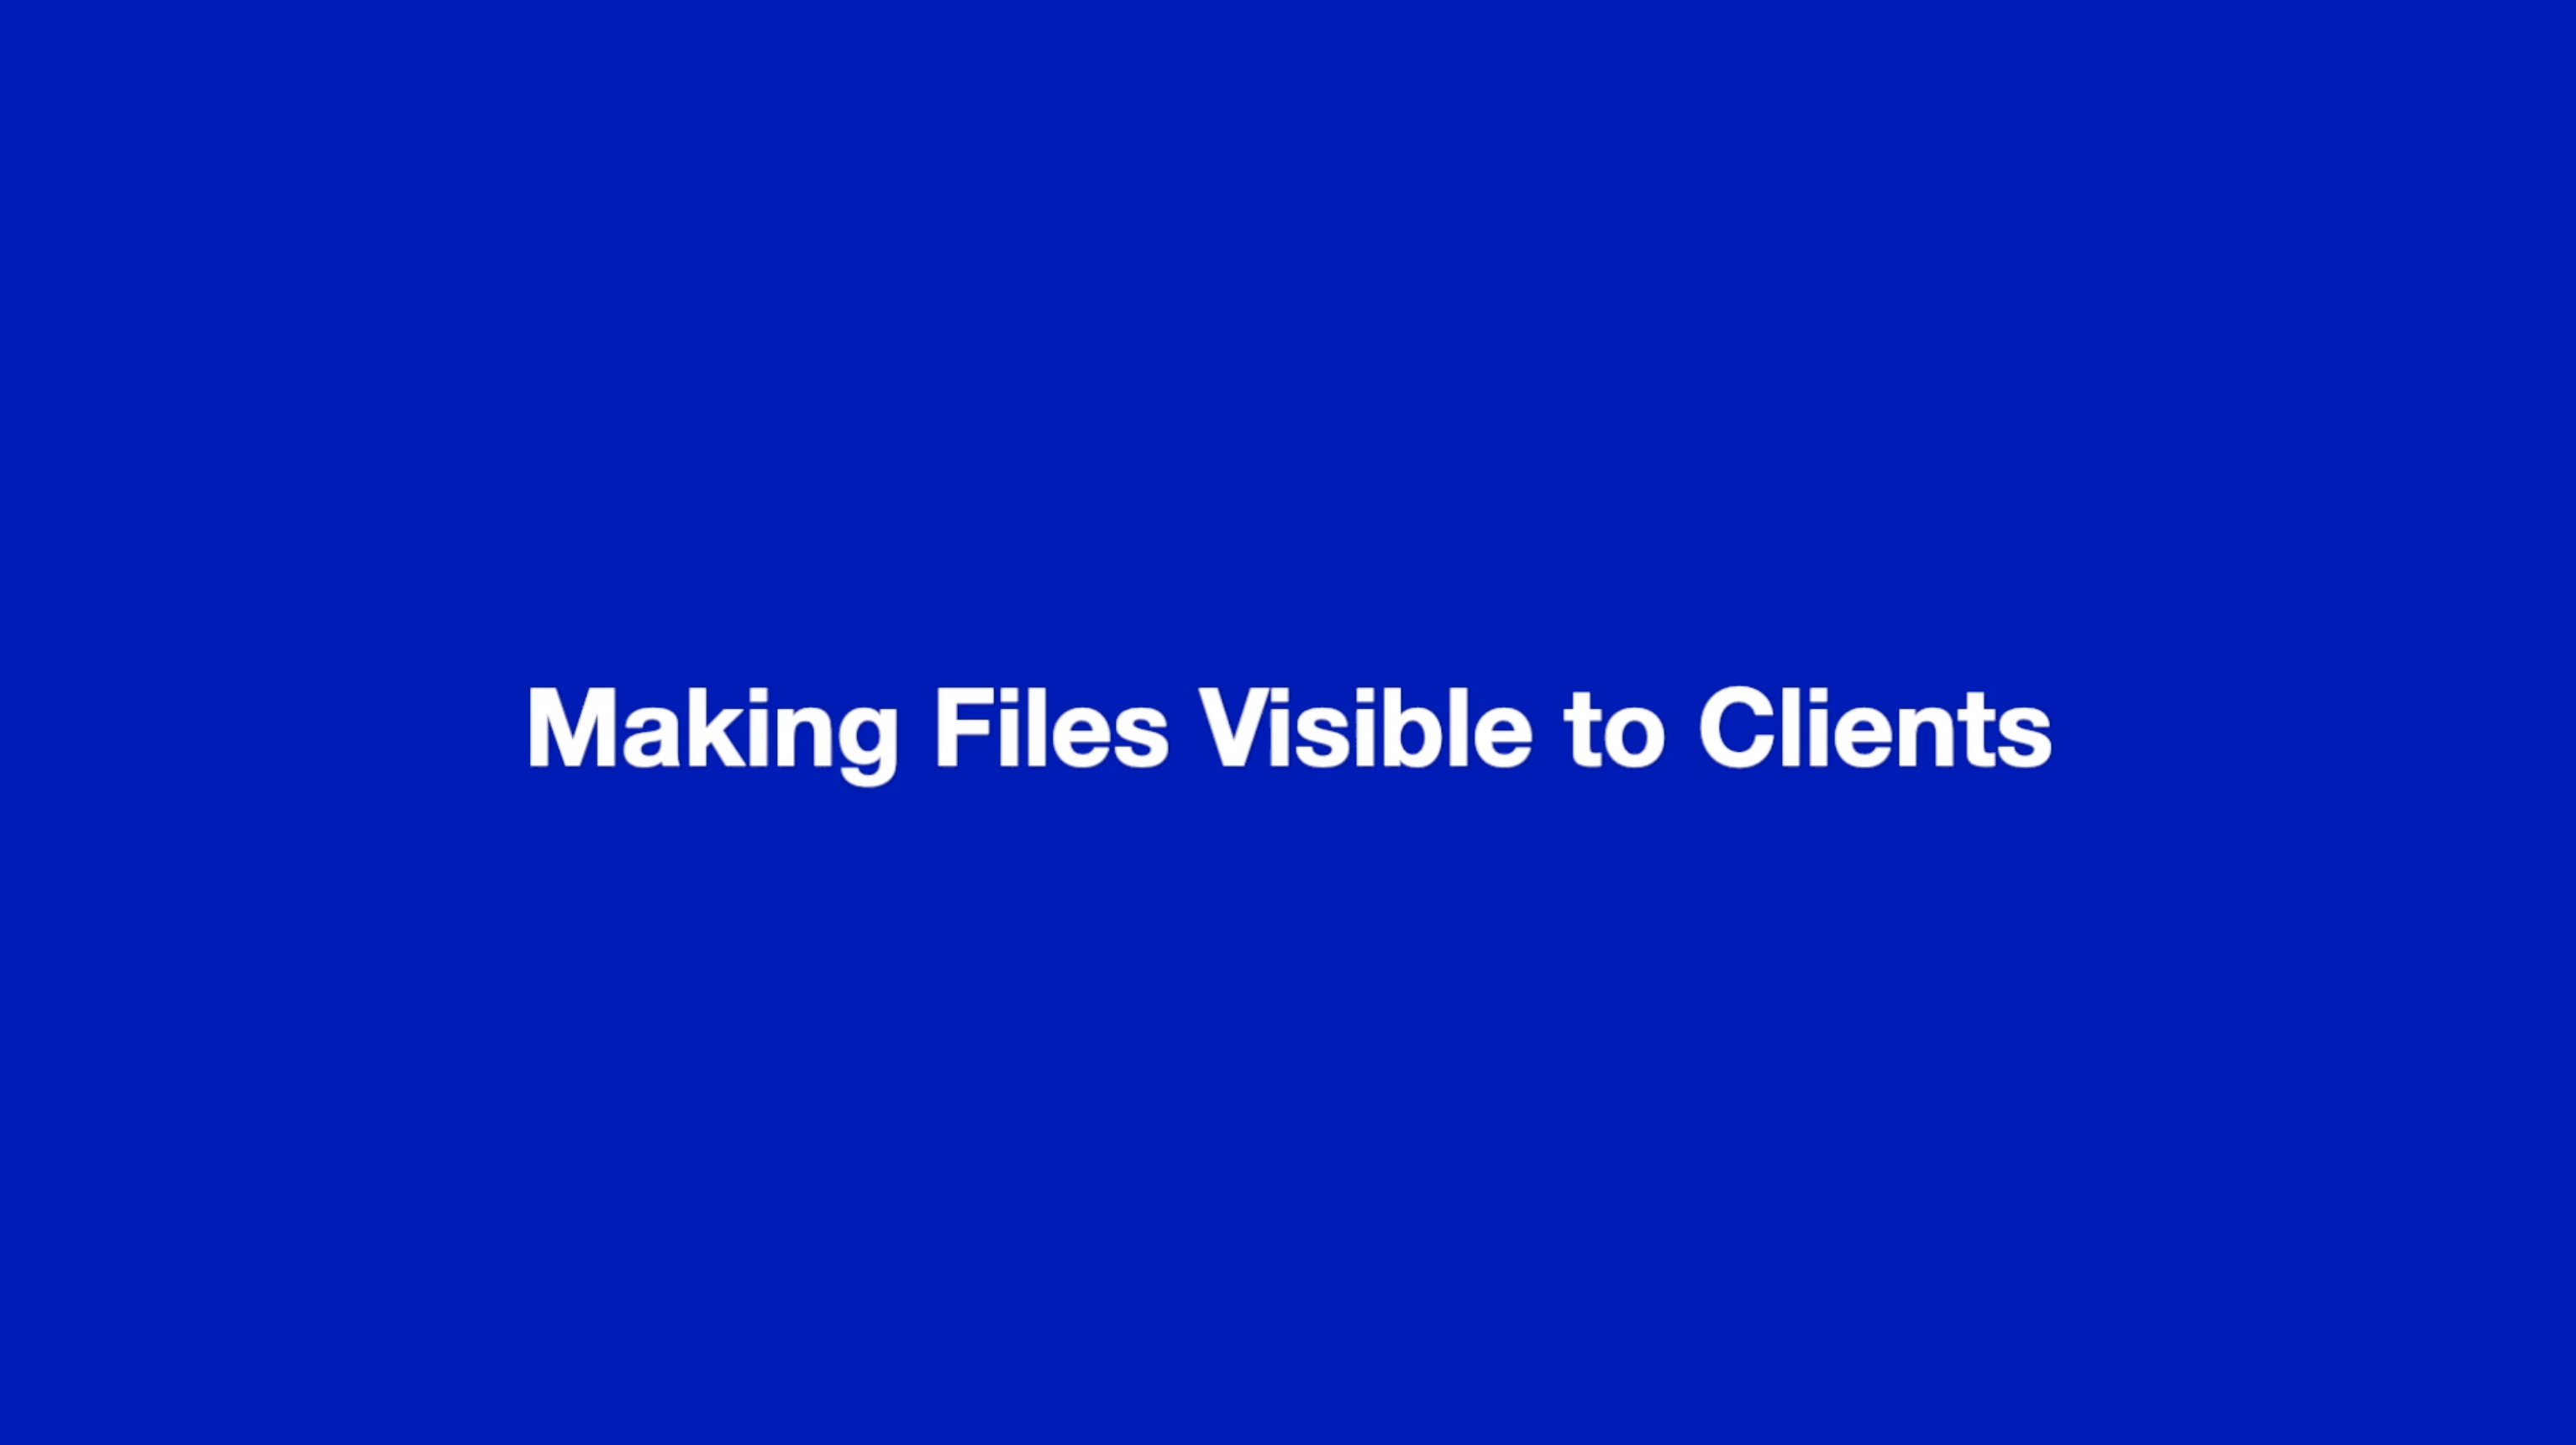 Making files visible to clients